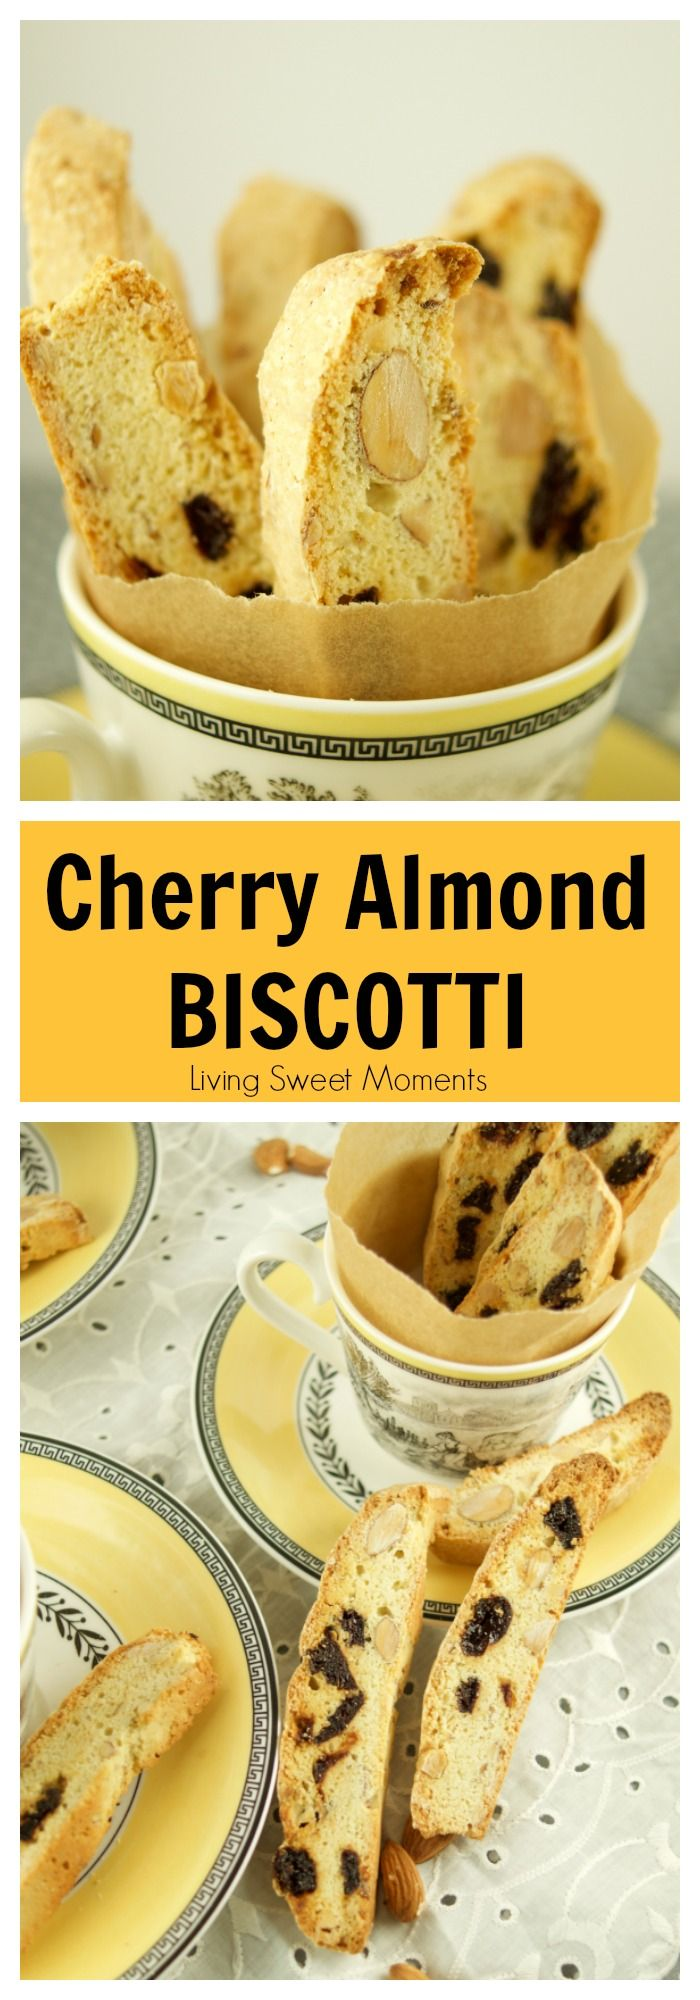 These delectable Italian Cherry Almond Biscotti recipe (Cantucci) are the perfect cookies to dip in wine, coffee and hot cocoa for breakfast, snack or dessert. More on livingsweetmoments.com